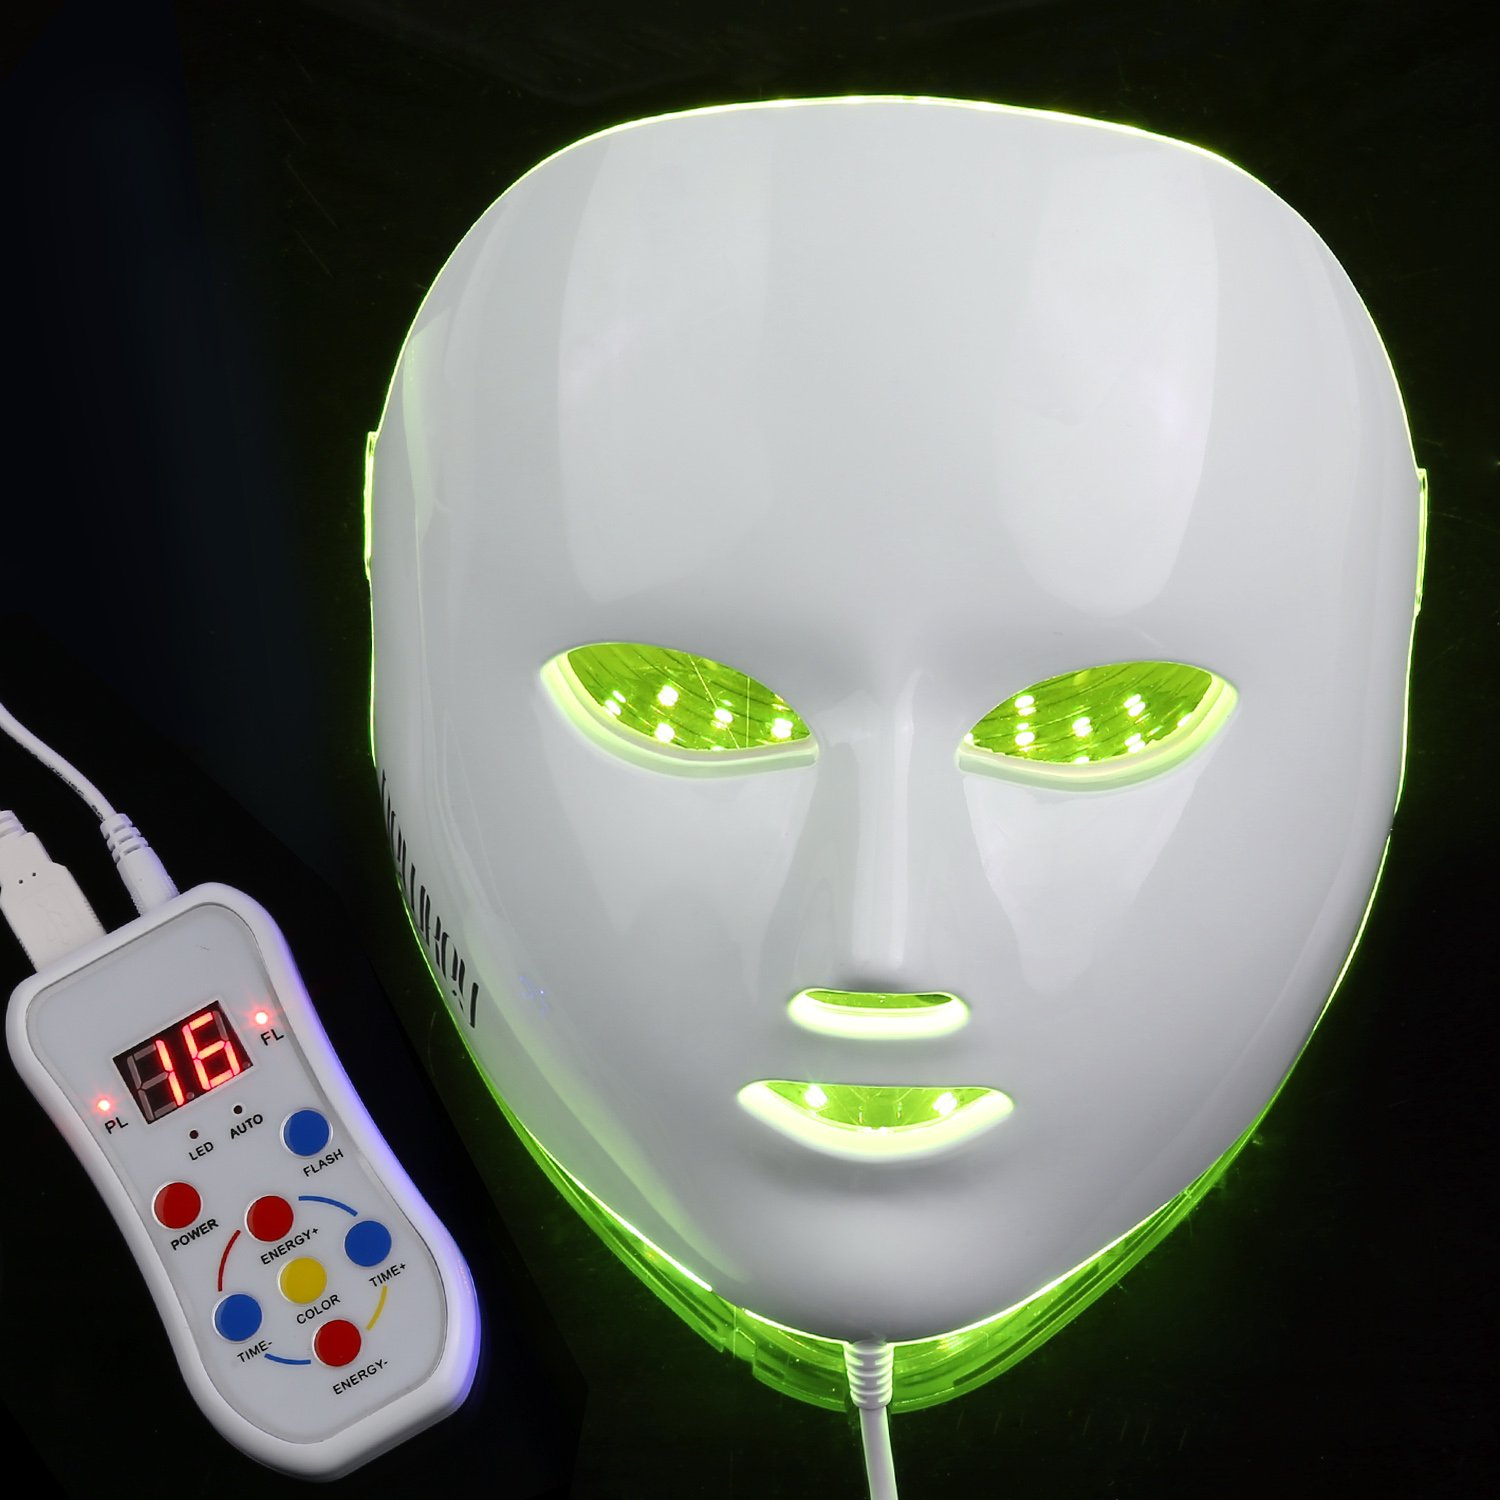 NEWKEY LED Photon Light Therapy Facial Mask Professional Anti Aging Skin Care Device for Face Whitening and Smooth - 1 YEAR WARRANTY by NEWKEY (Image #5)